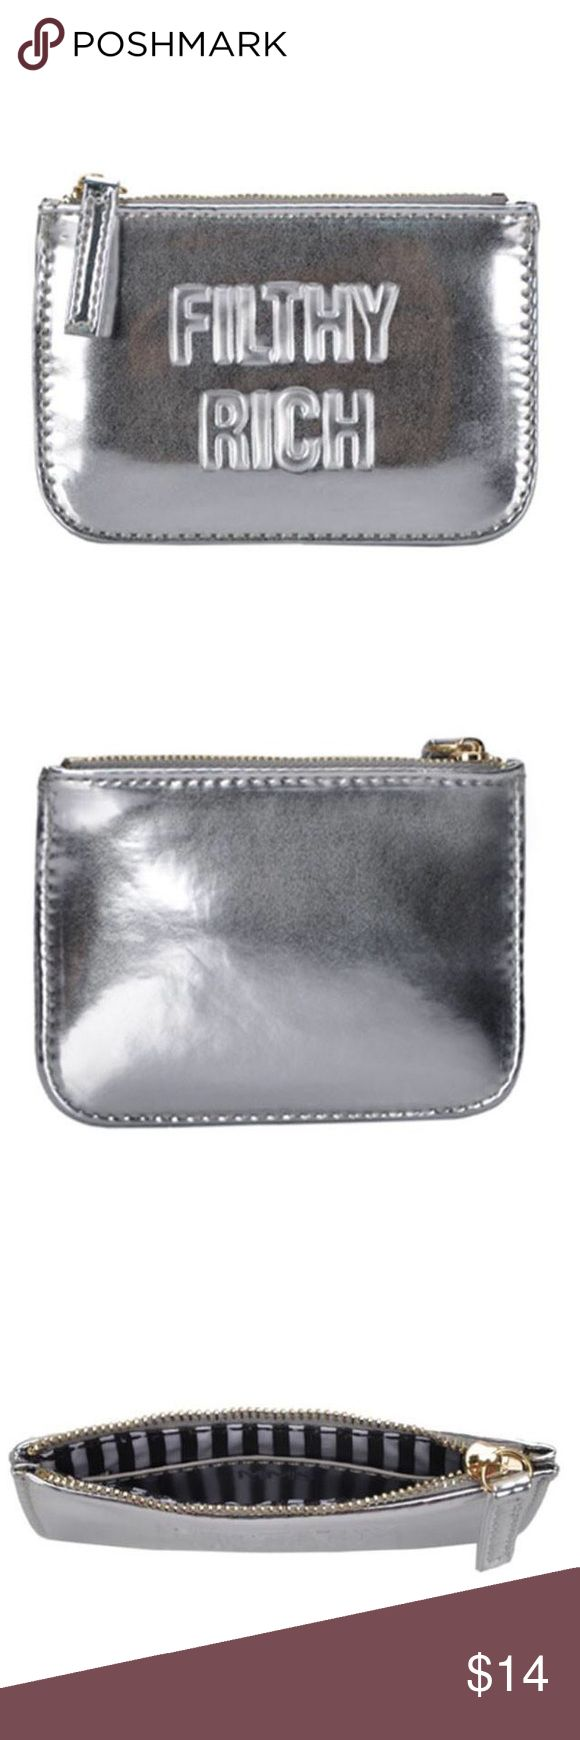 "Filthy Rich Coin Purse Stash your cash in this nifty little pouch for your next spending spree! Flat, rectangular wallet highlights a shiny metallic exterior that features ""Filthy Rich"" in stamped, capitalized typeface. Zip-top opening reveals a lined interior with an open sidewall pocket.  Length: 3.5"", Width: 5.25"", Depth: 0.5"" Man made materials MMS Design Studio Accessories"